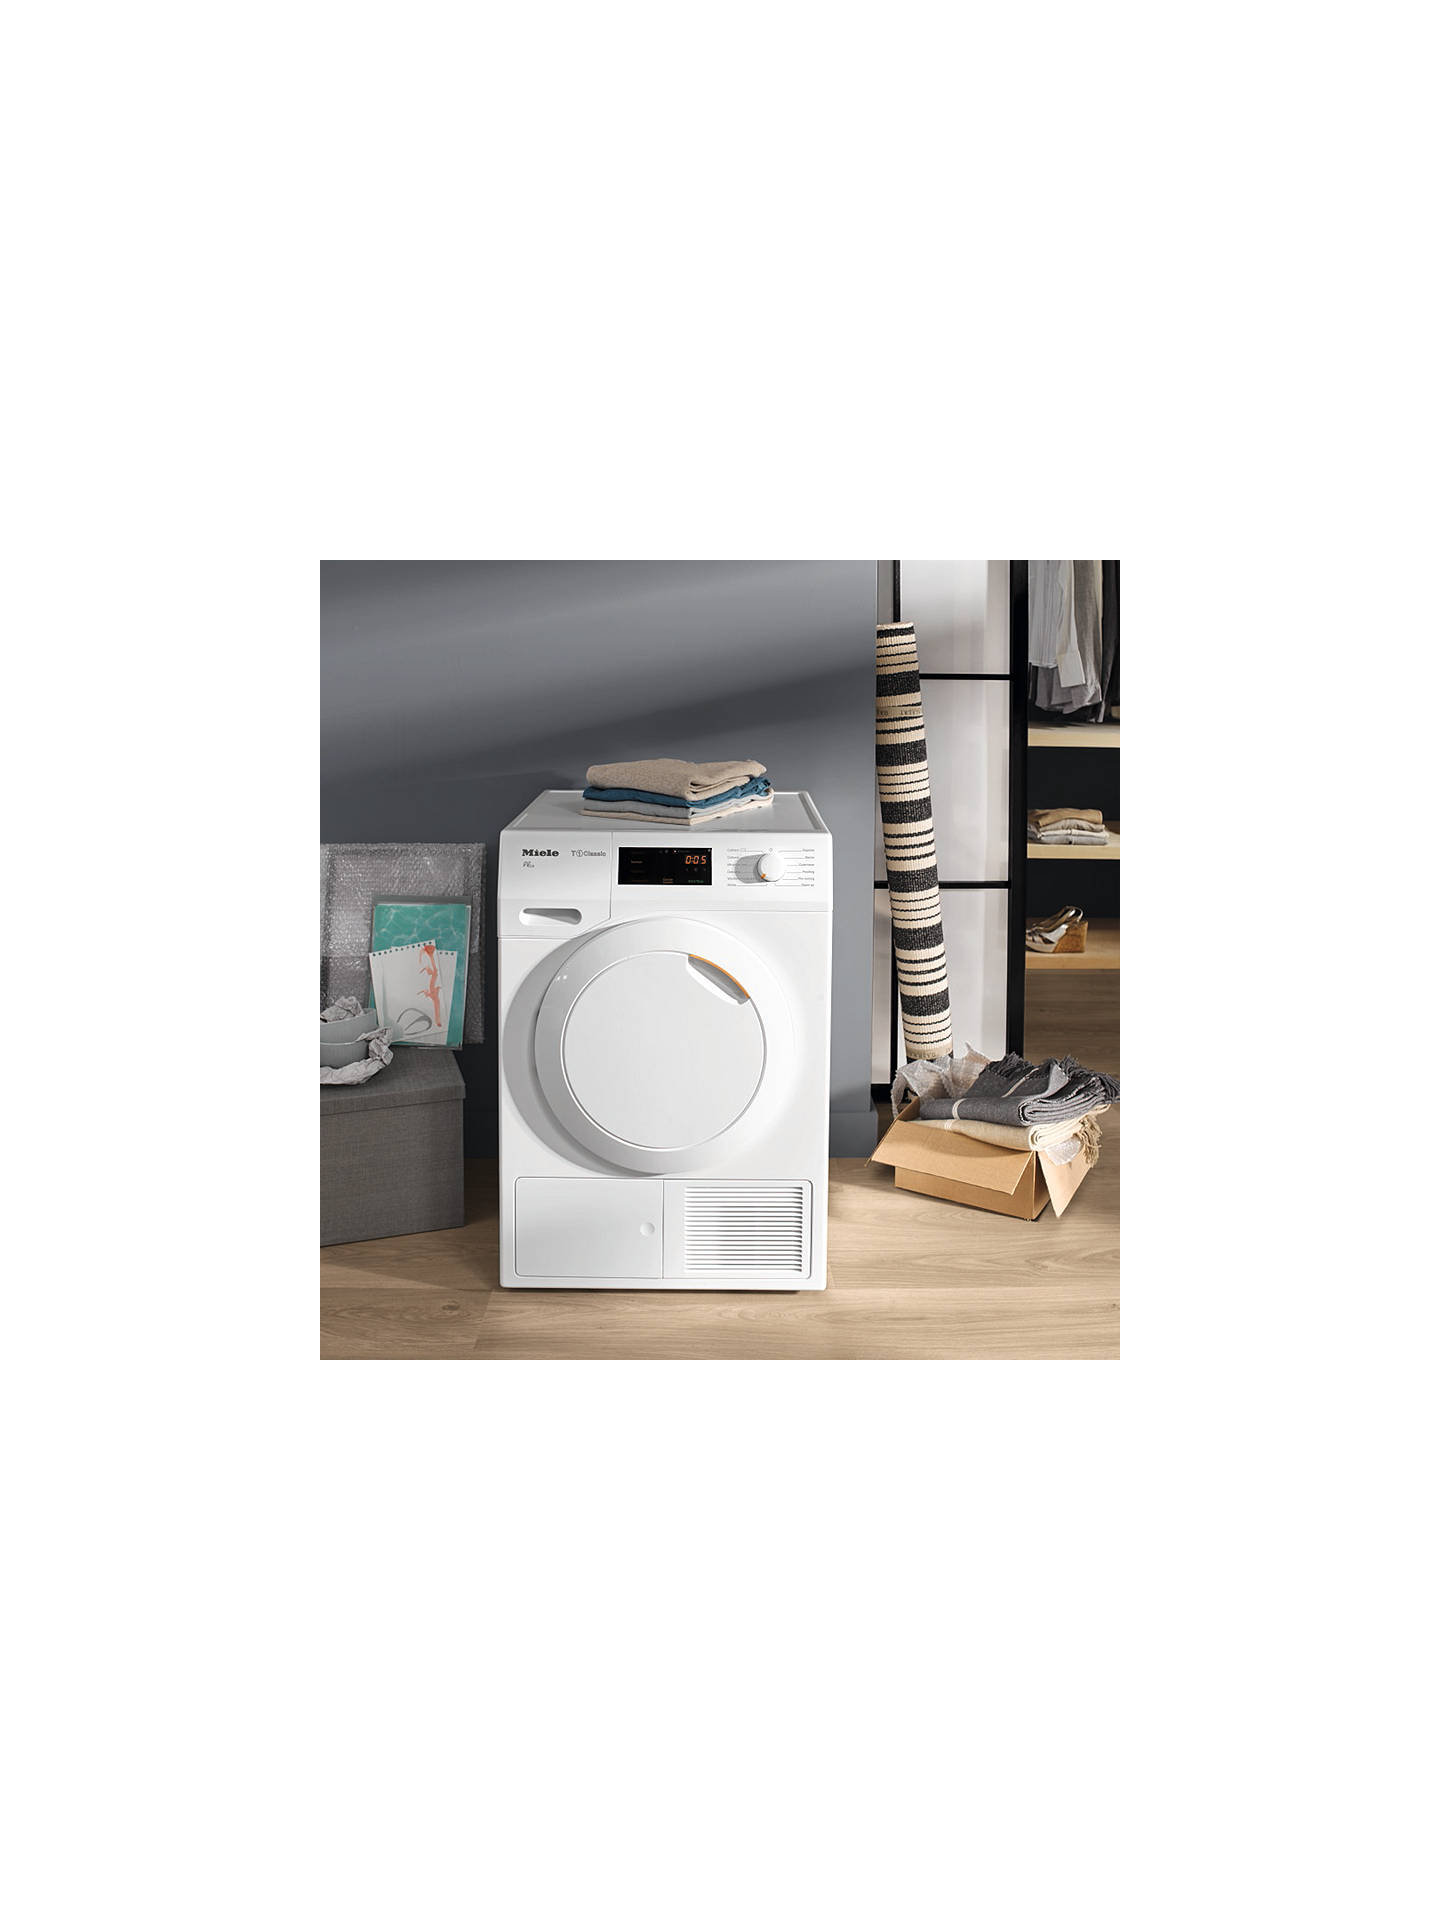 Miele TDB130WP Eco Heat Pump Tumble Dryer, 7kg Load, A++